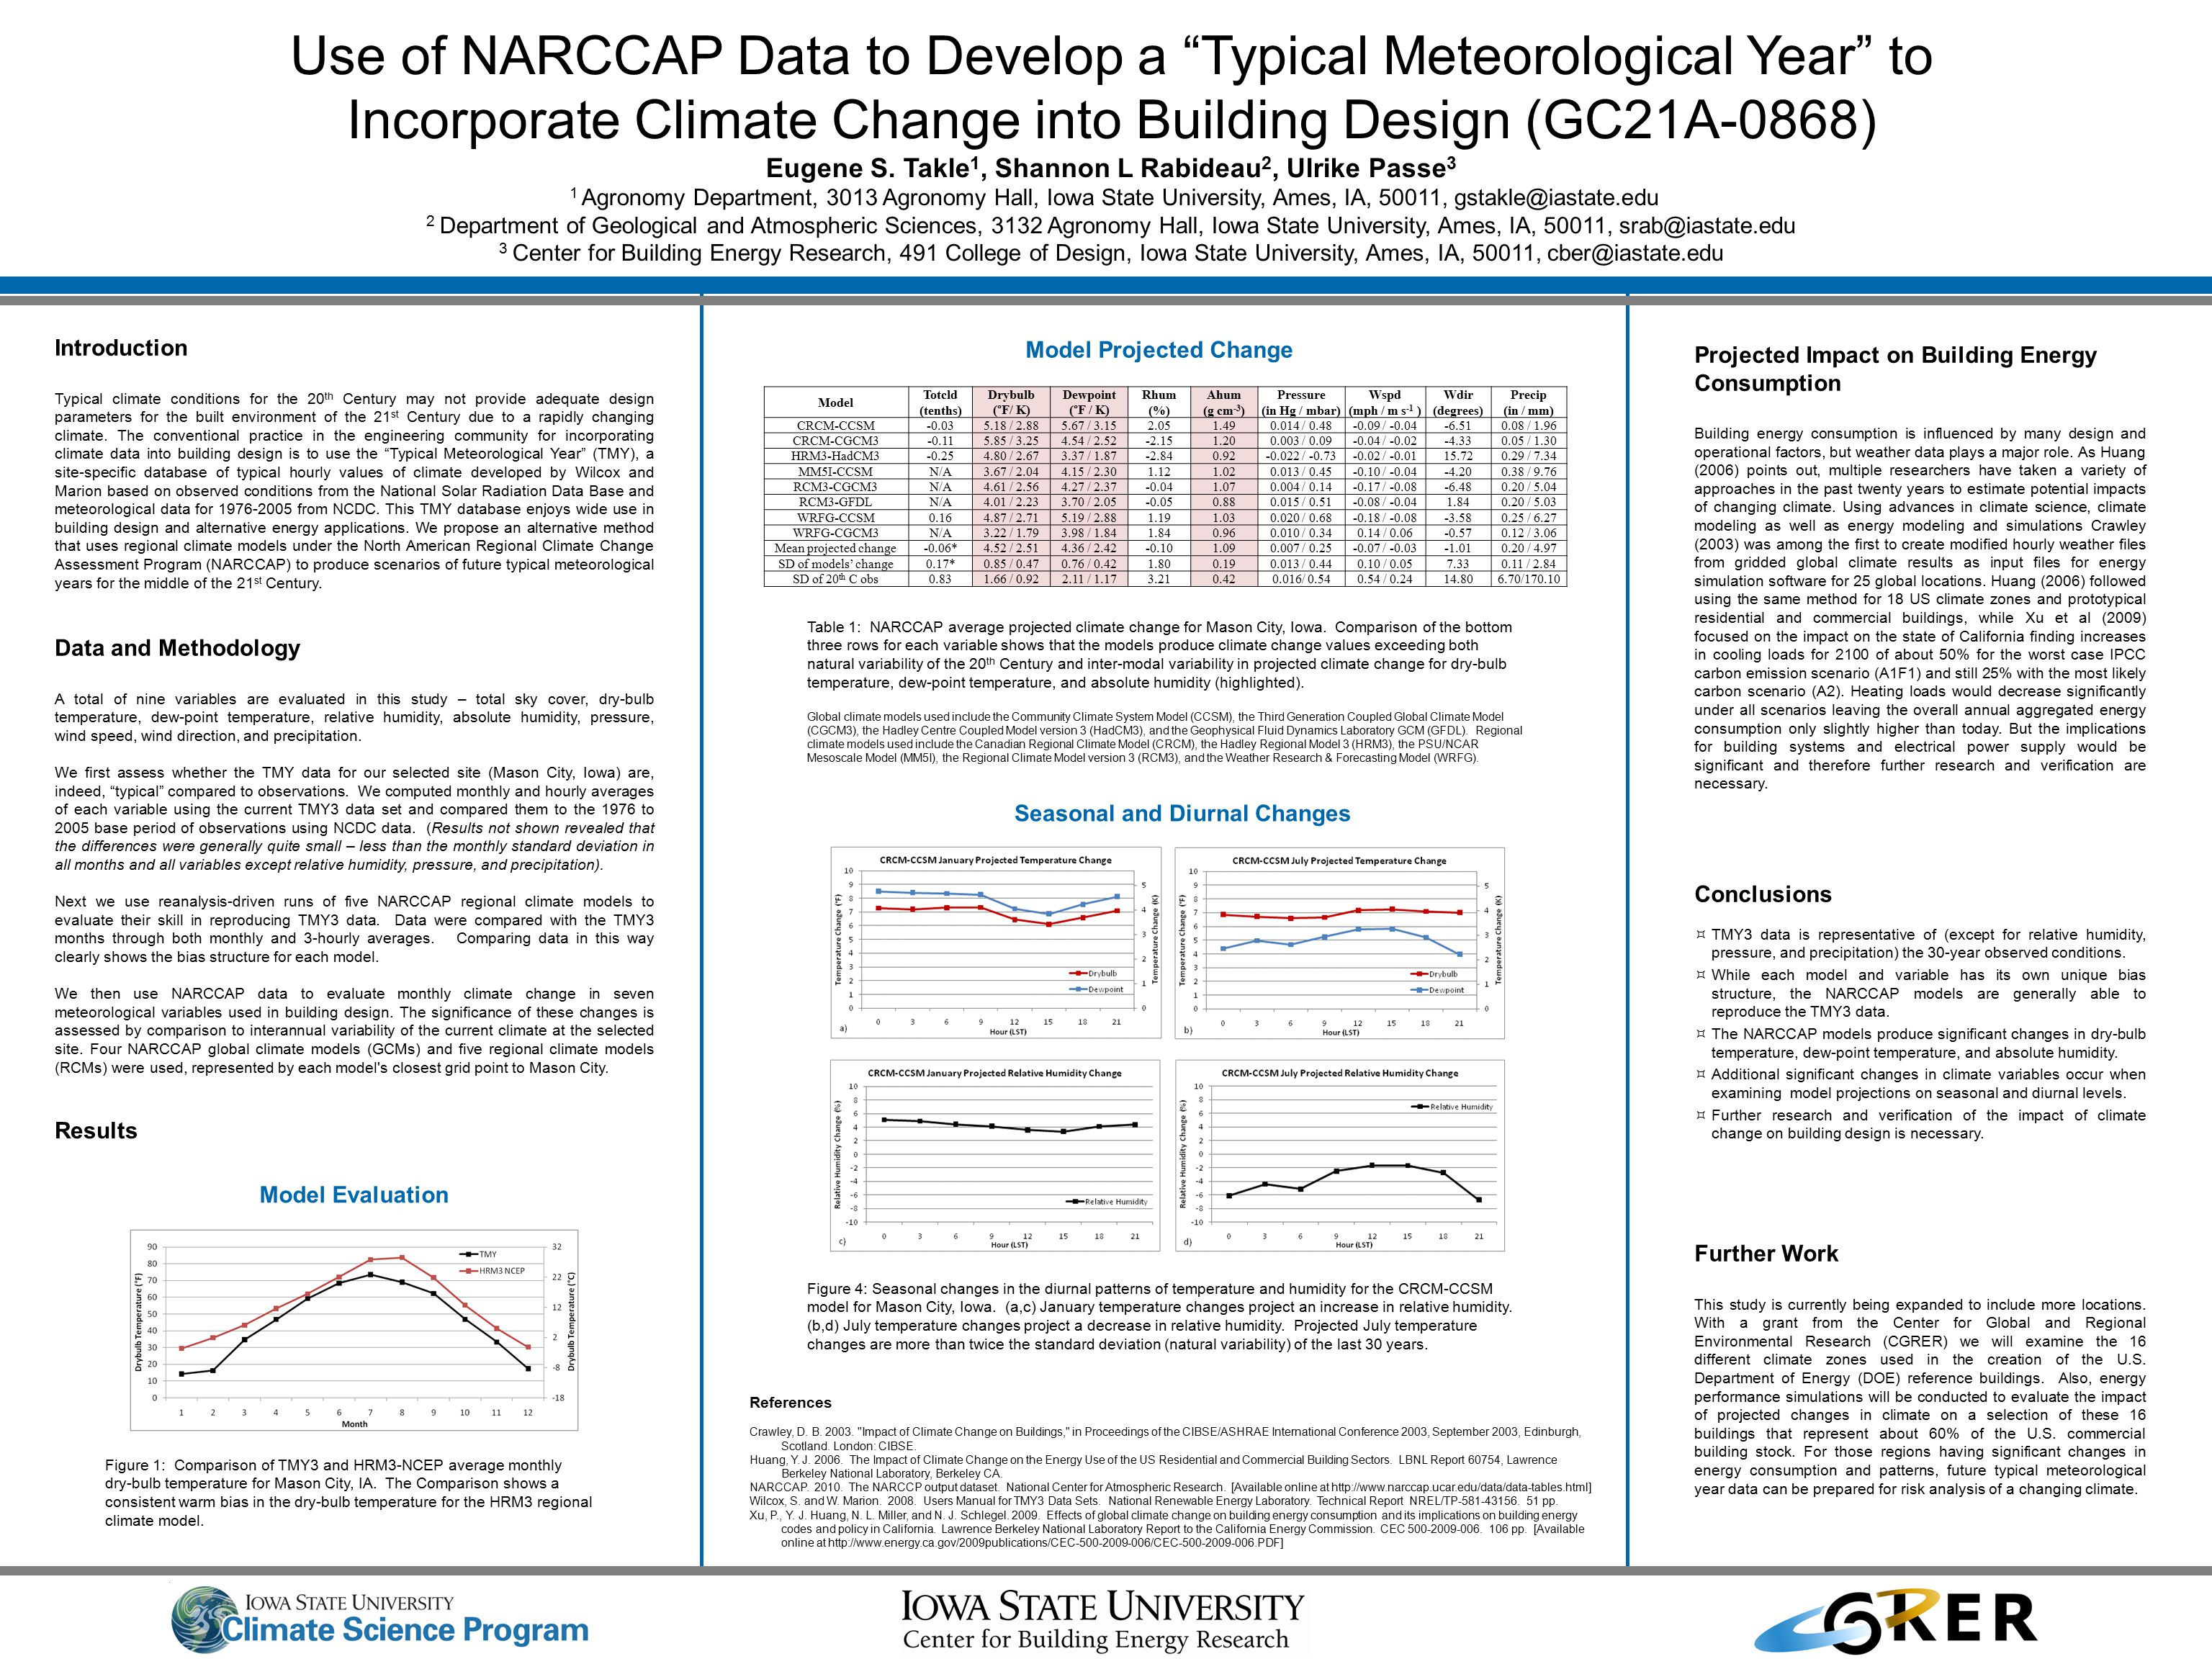 """Use of NARCCAP Data to Develop a """"Typical Meteorological Year"""" to Incorporate Climate Change into Building Design (GC21A-0868) Eugene S. Takle 1, Shan"""